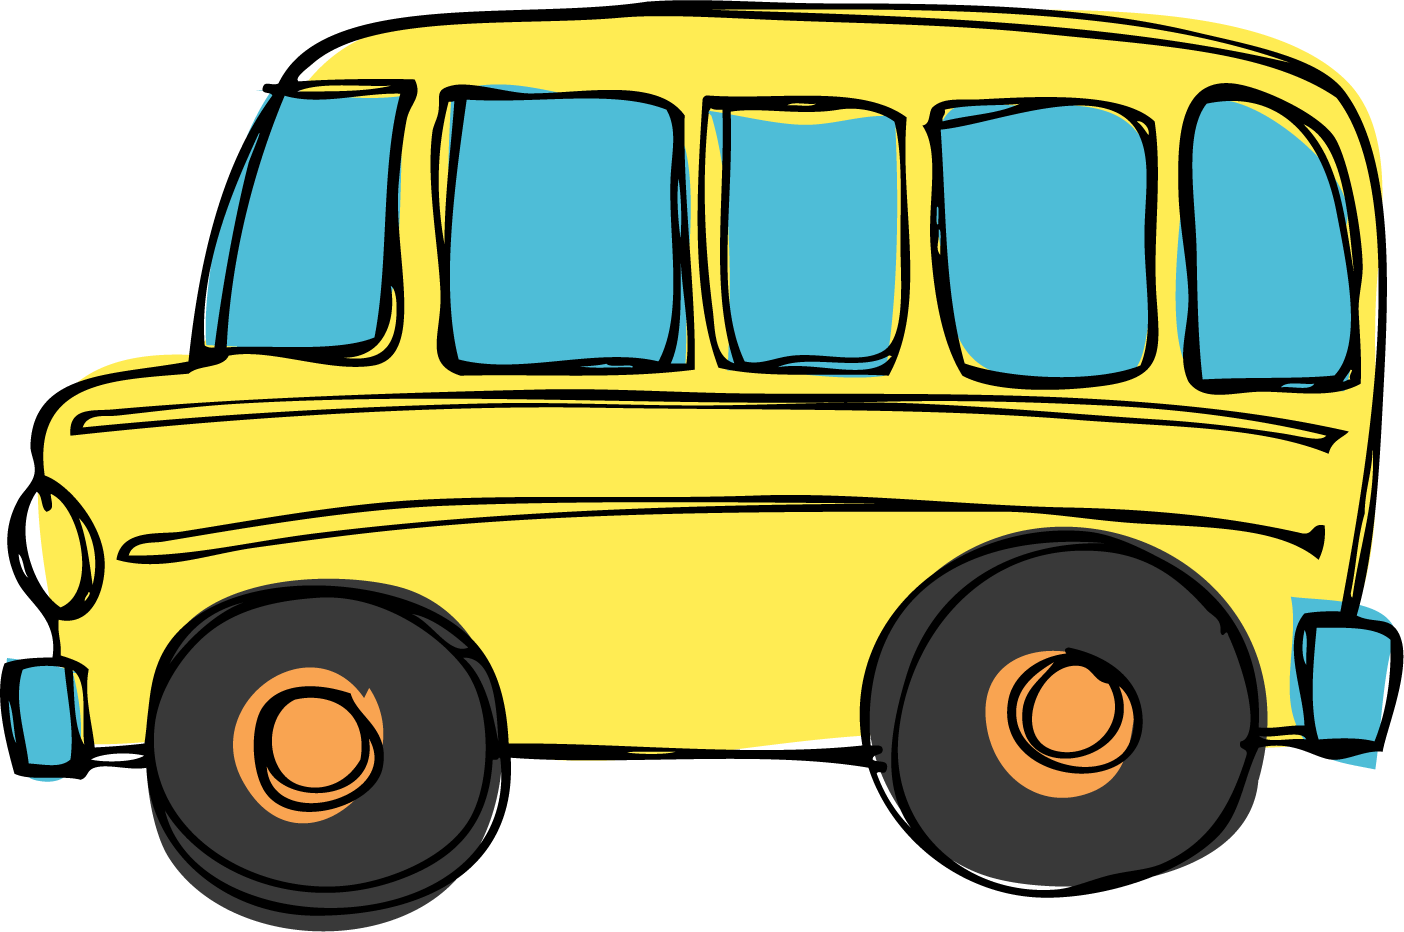 Yellow Bus Clipart Free Images-Yellow bus clipart free images-12